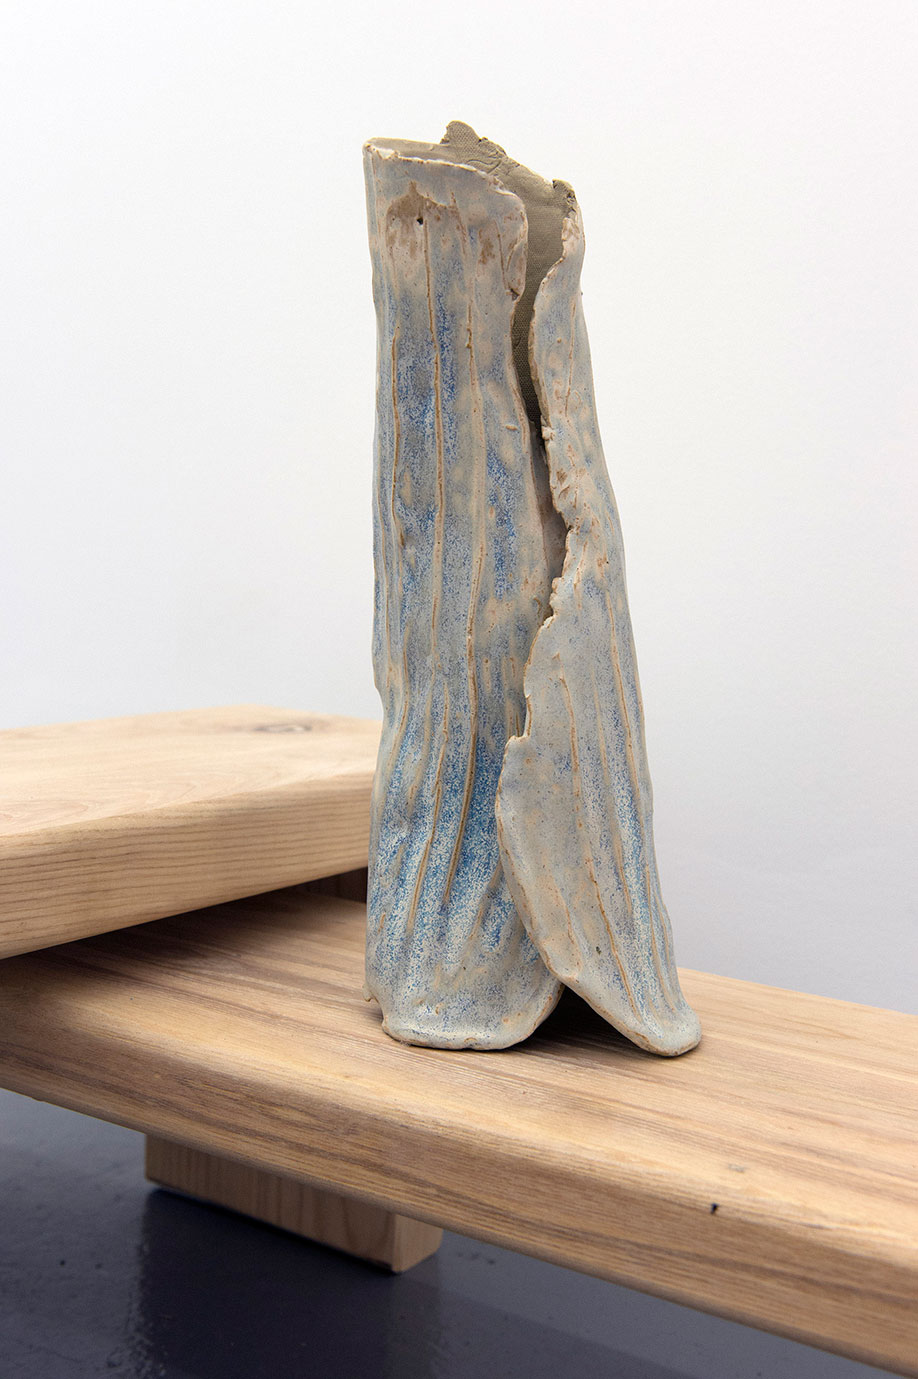 <b>Title:&nbsp;</b>Leg Retainer (Onus)<br /><b>Year:&nbsp;</b>2015<br /><b>Medium:&nbsp;</b>Ceramic<br /><b>Size:&nbsp;</b>32 x 13 x 12 cm